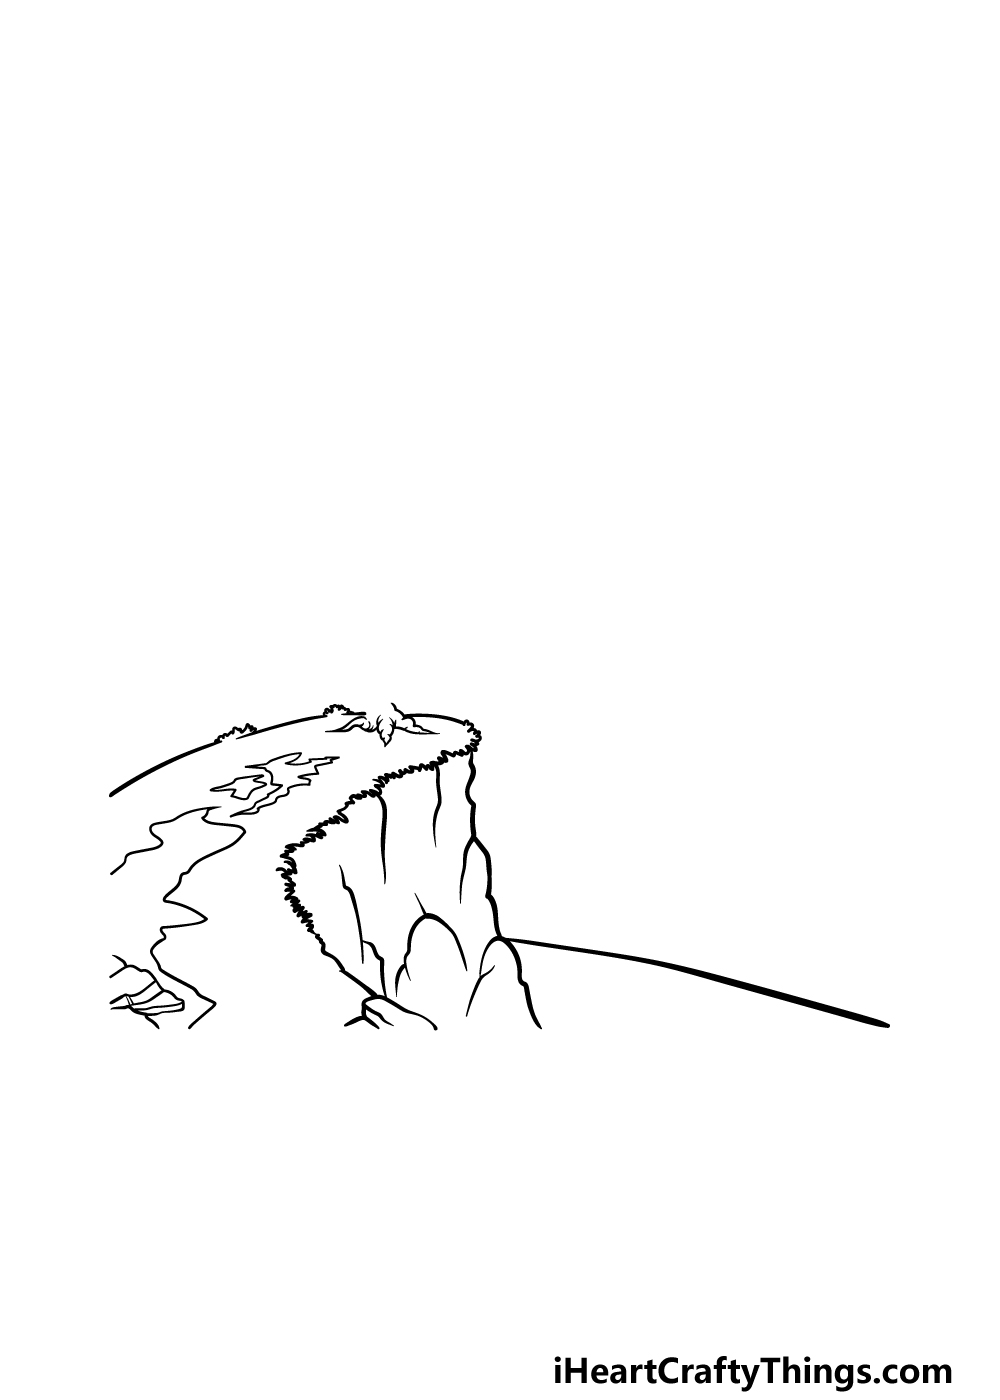 drawing a cliff step 4